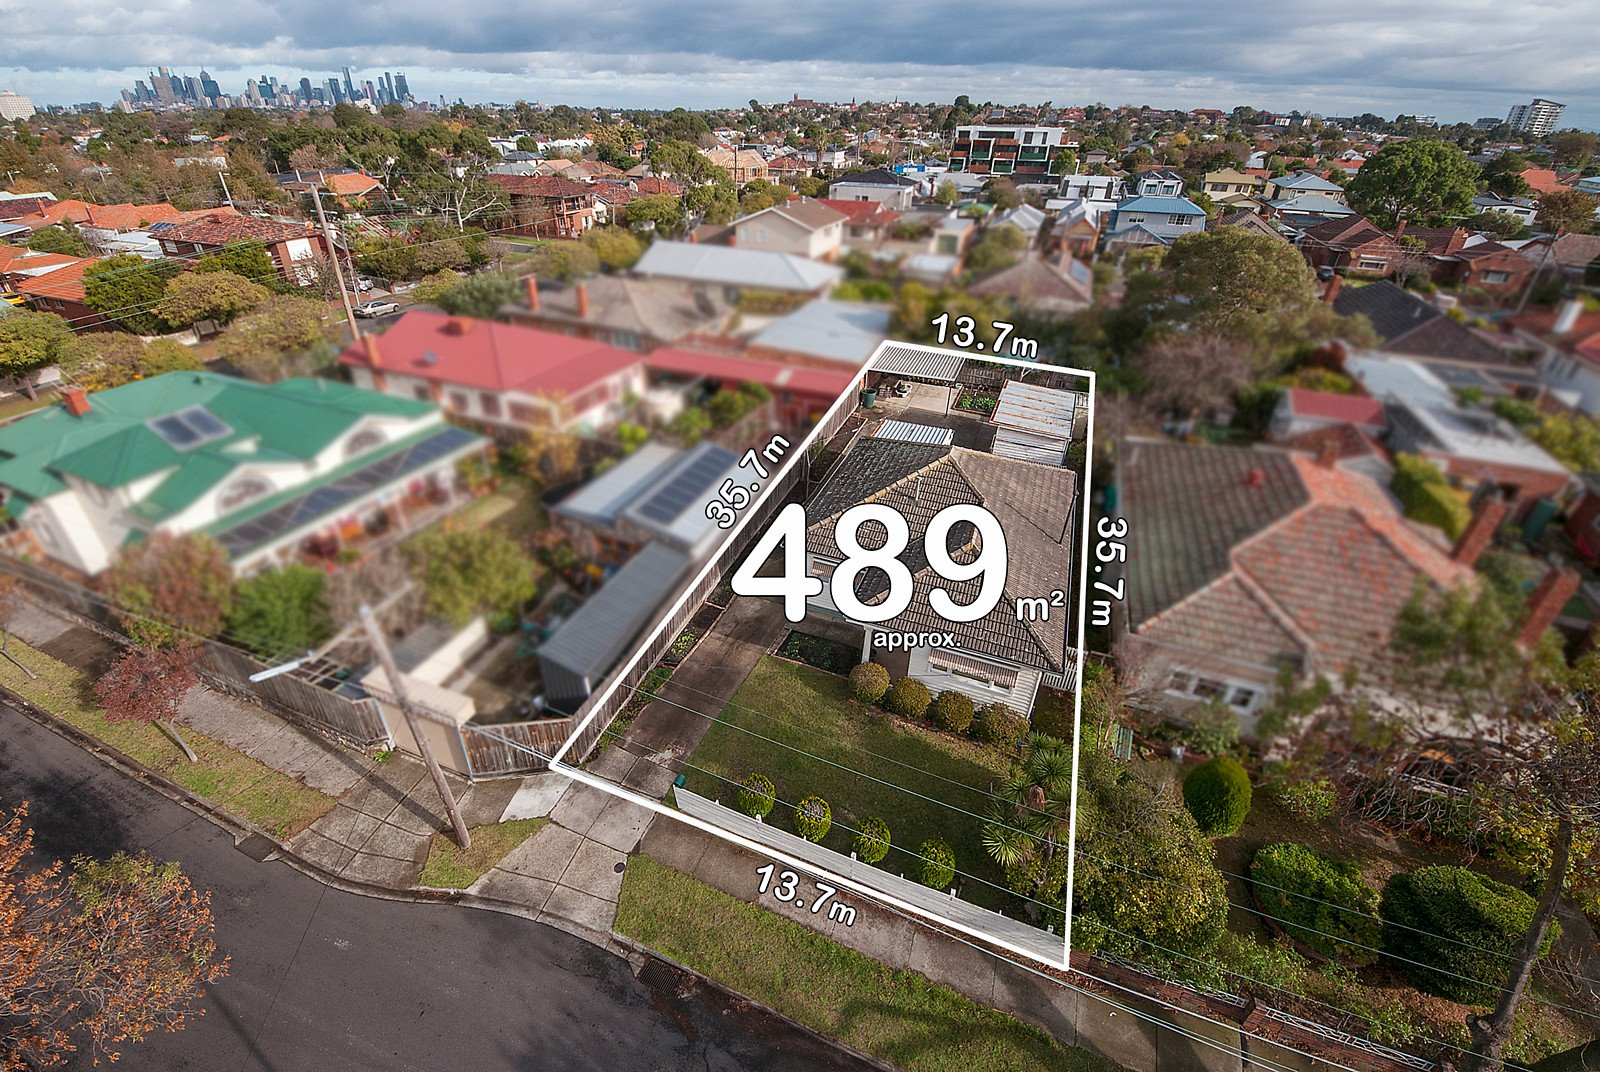 1 French Avenue, Northcote, VIC, 3070 image 2